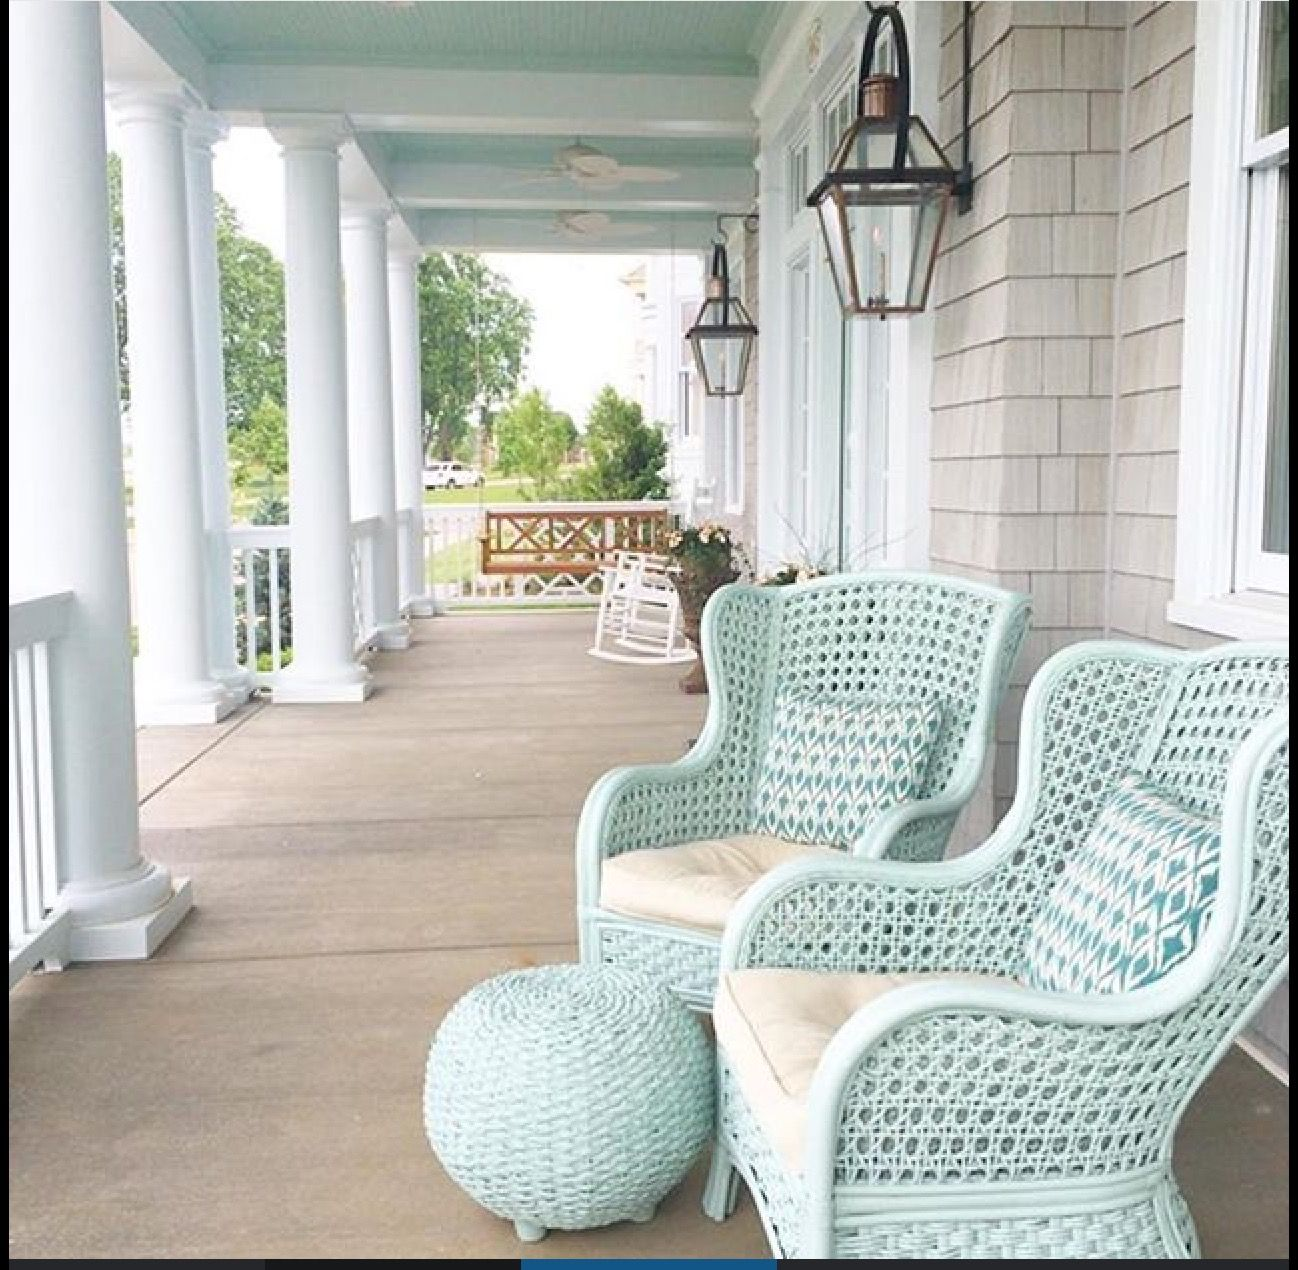 Bluff Diaries- Chapter 5 | Pinterest | Porch, Beach and House